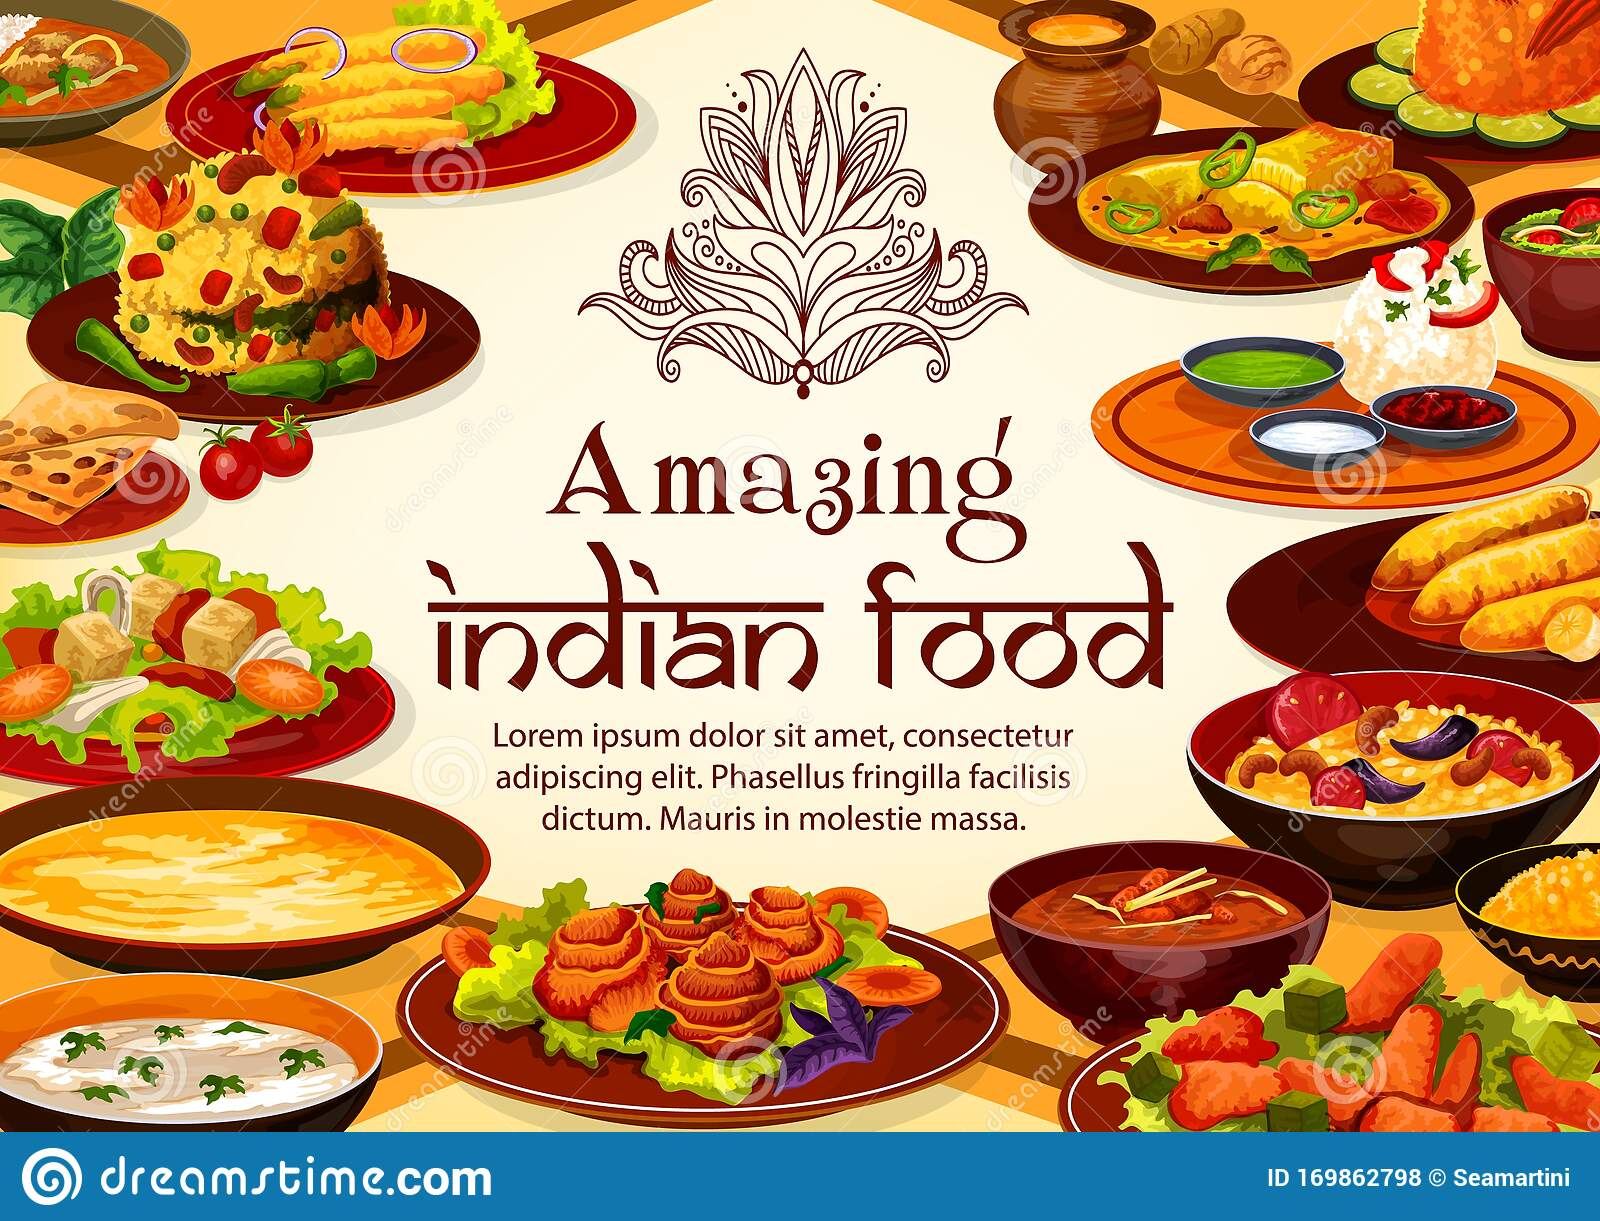 Indian Food Cuisine Dishes Restaurant Menu Cover Stock Vector Illustration Of Gourmet Breakfast 169862798